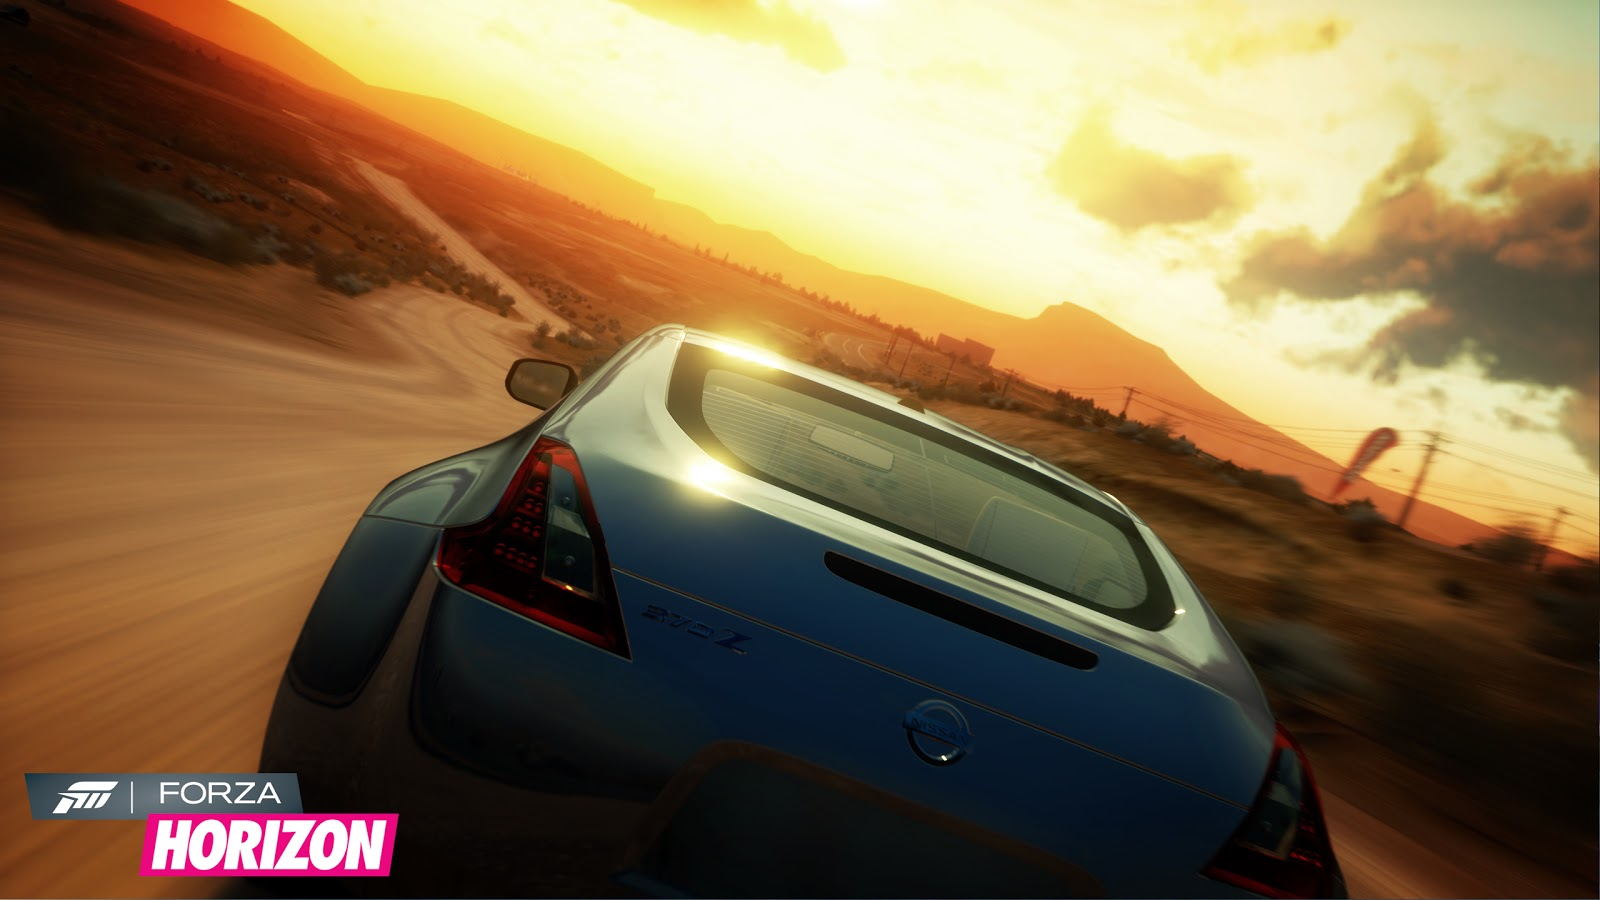 Forza Horizon HD & Widescreen Wallpaper 0.351417630131488